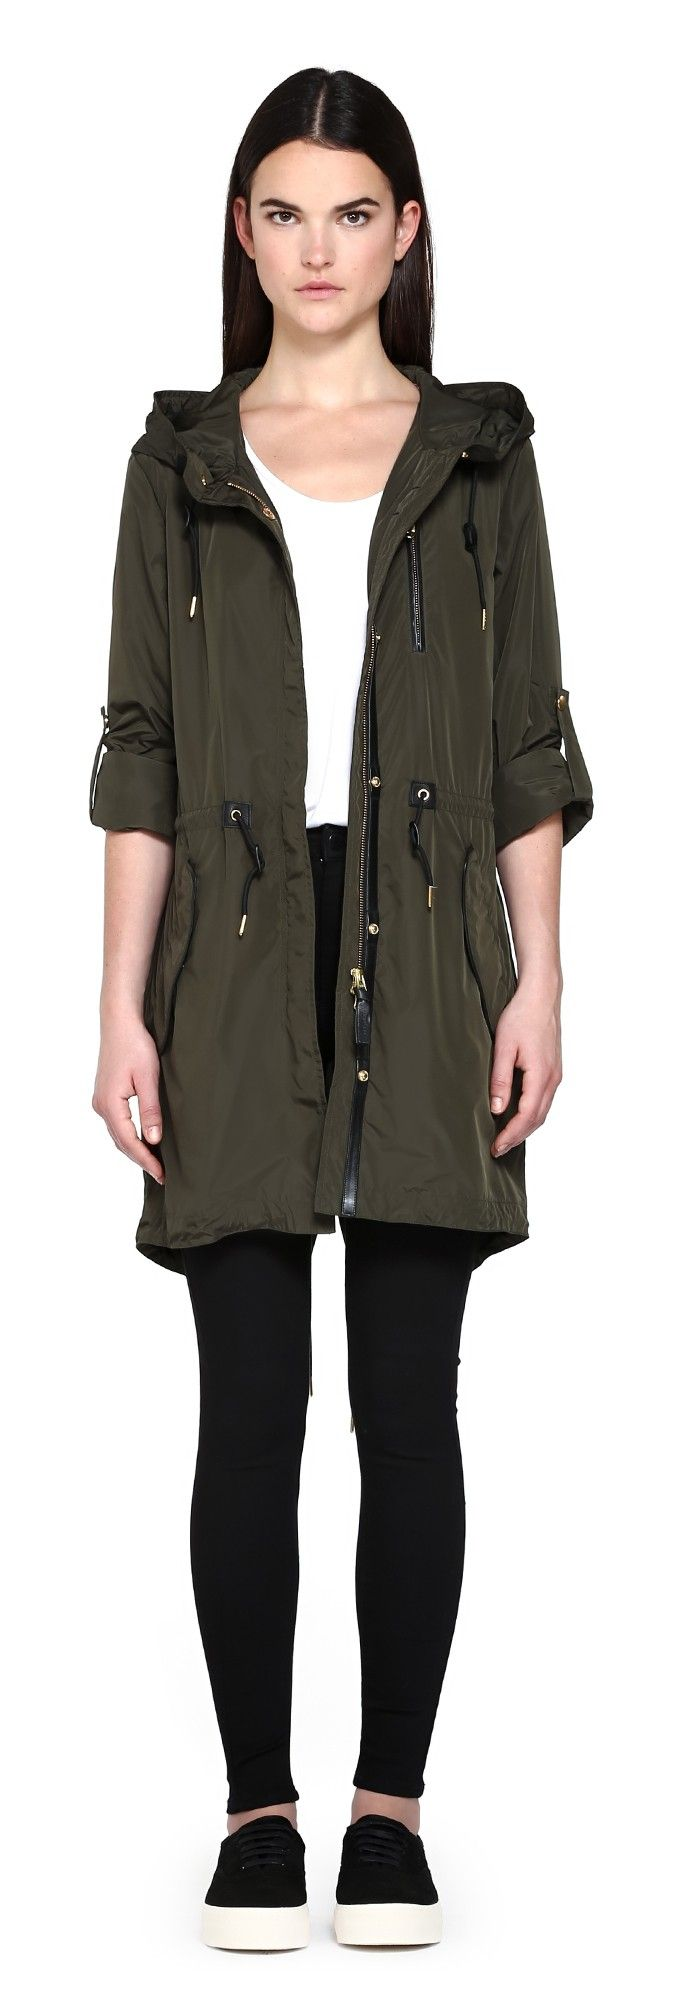 NORMA ARMY FISHTAIL PARKA RAINCOAT WITH HOOD | FOR WOMEN | Mackage